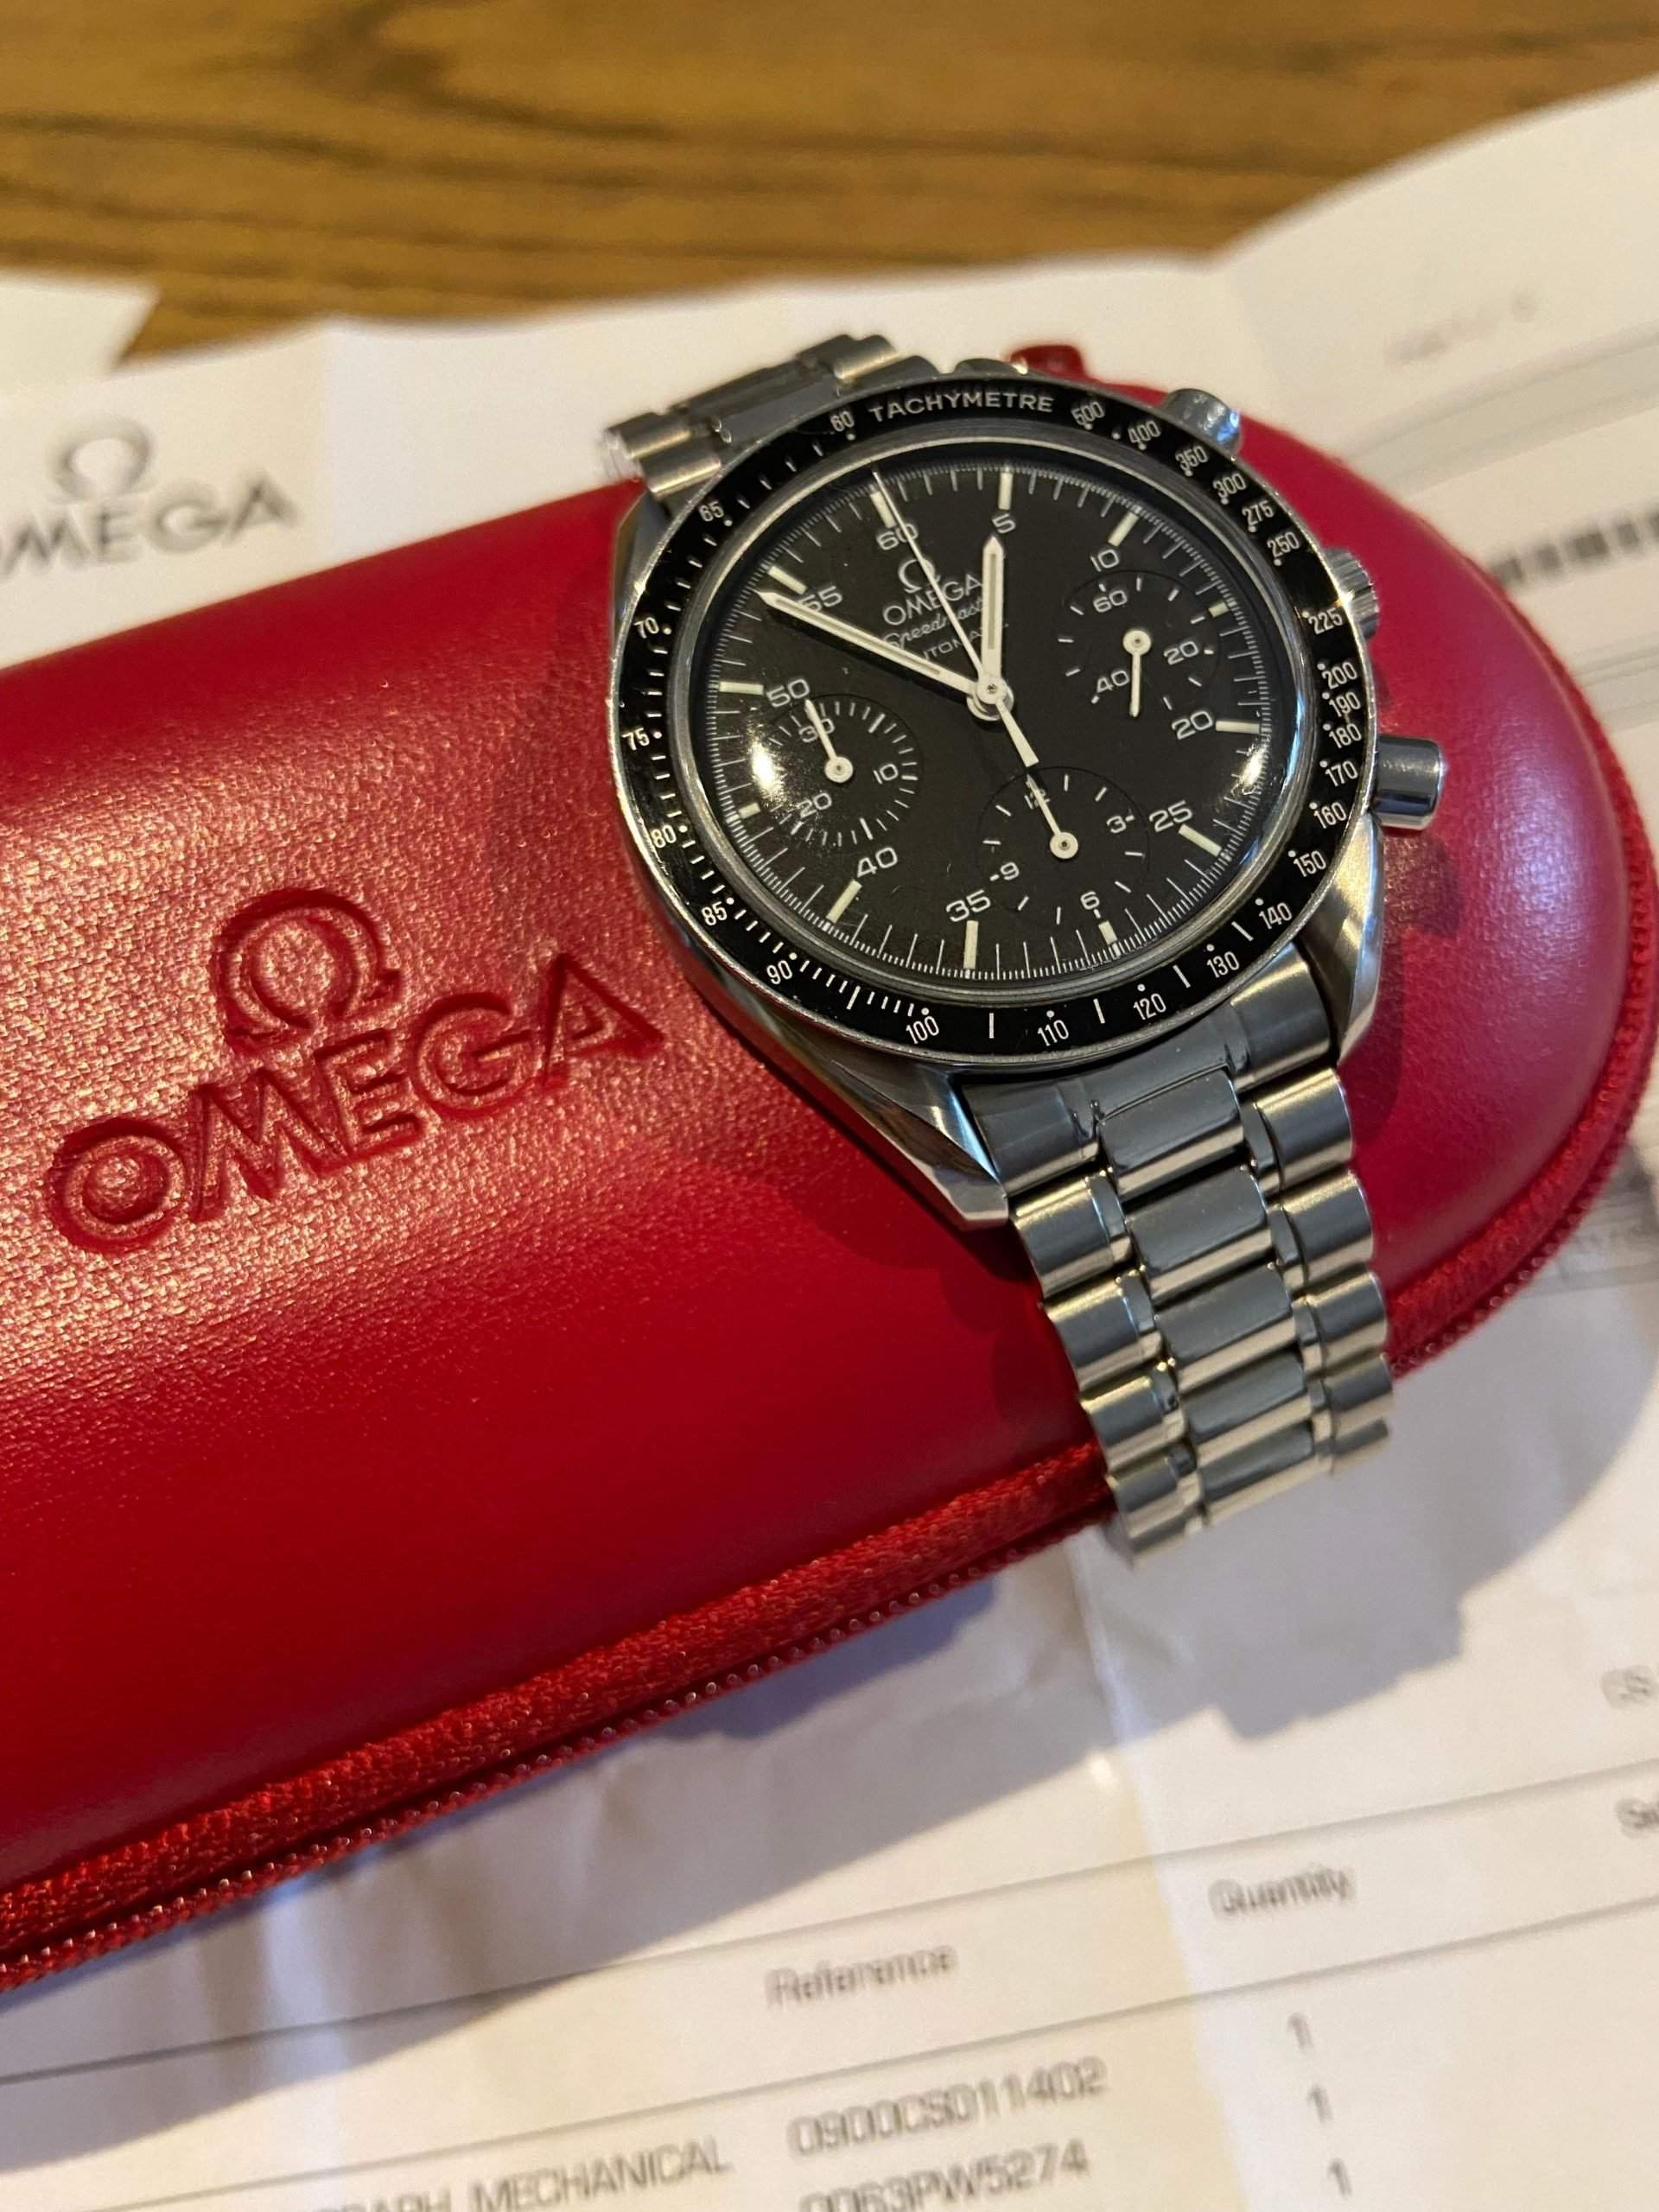 Compact 39-mm case, familiar design, and an automatic movement: The Speedmaster Reduced is a great entry-level Omega.